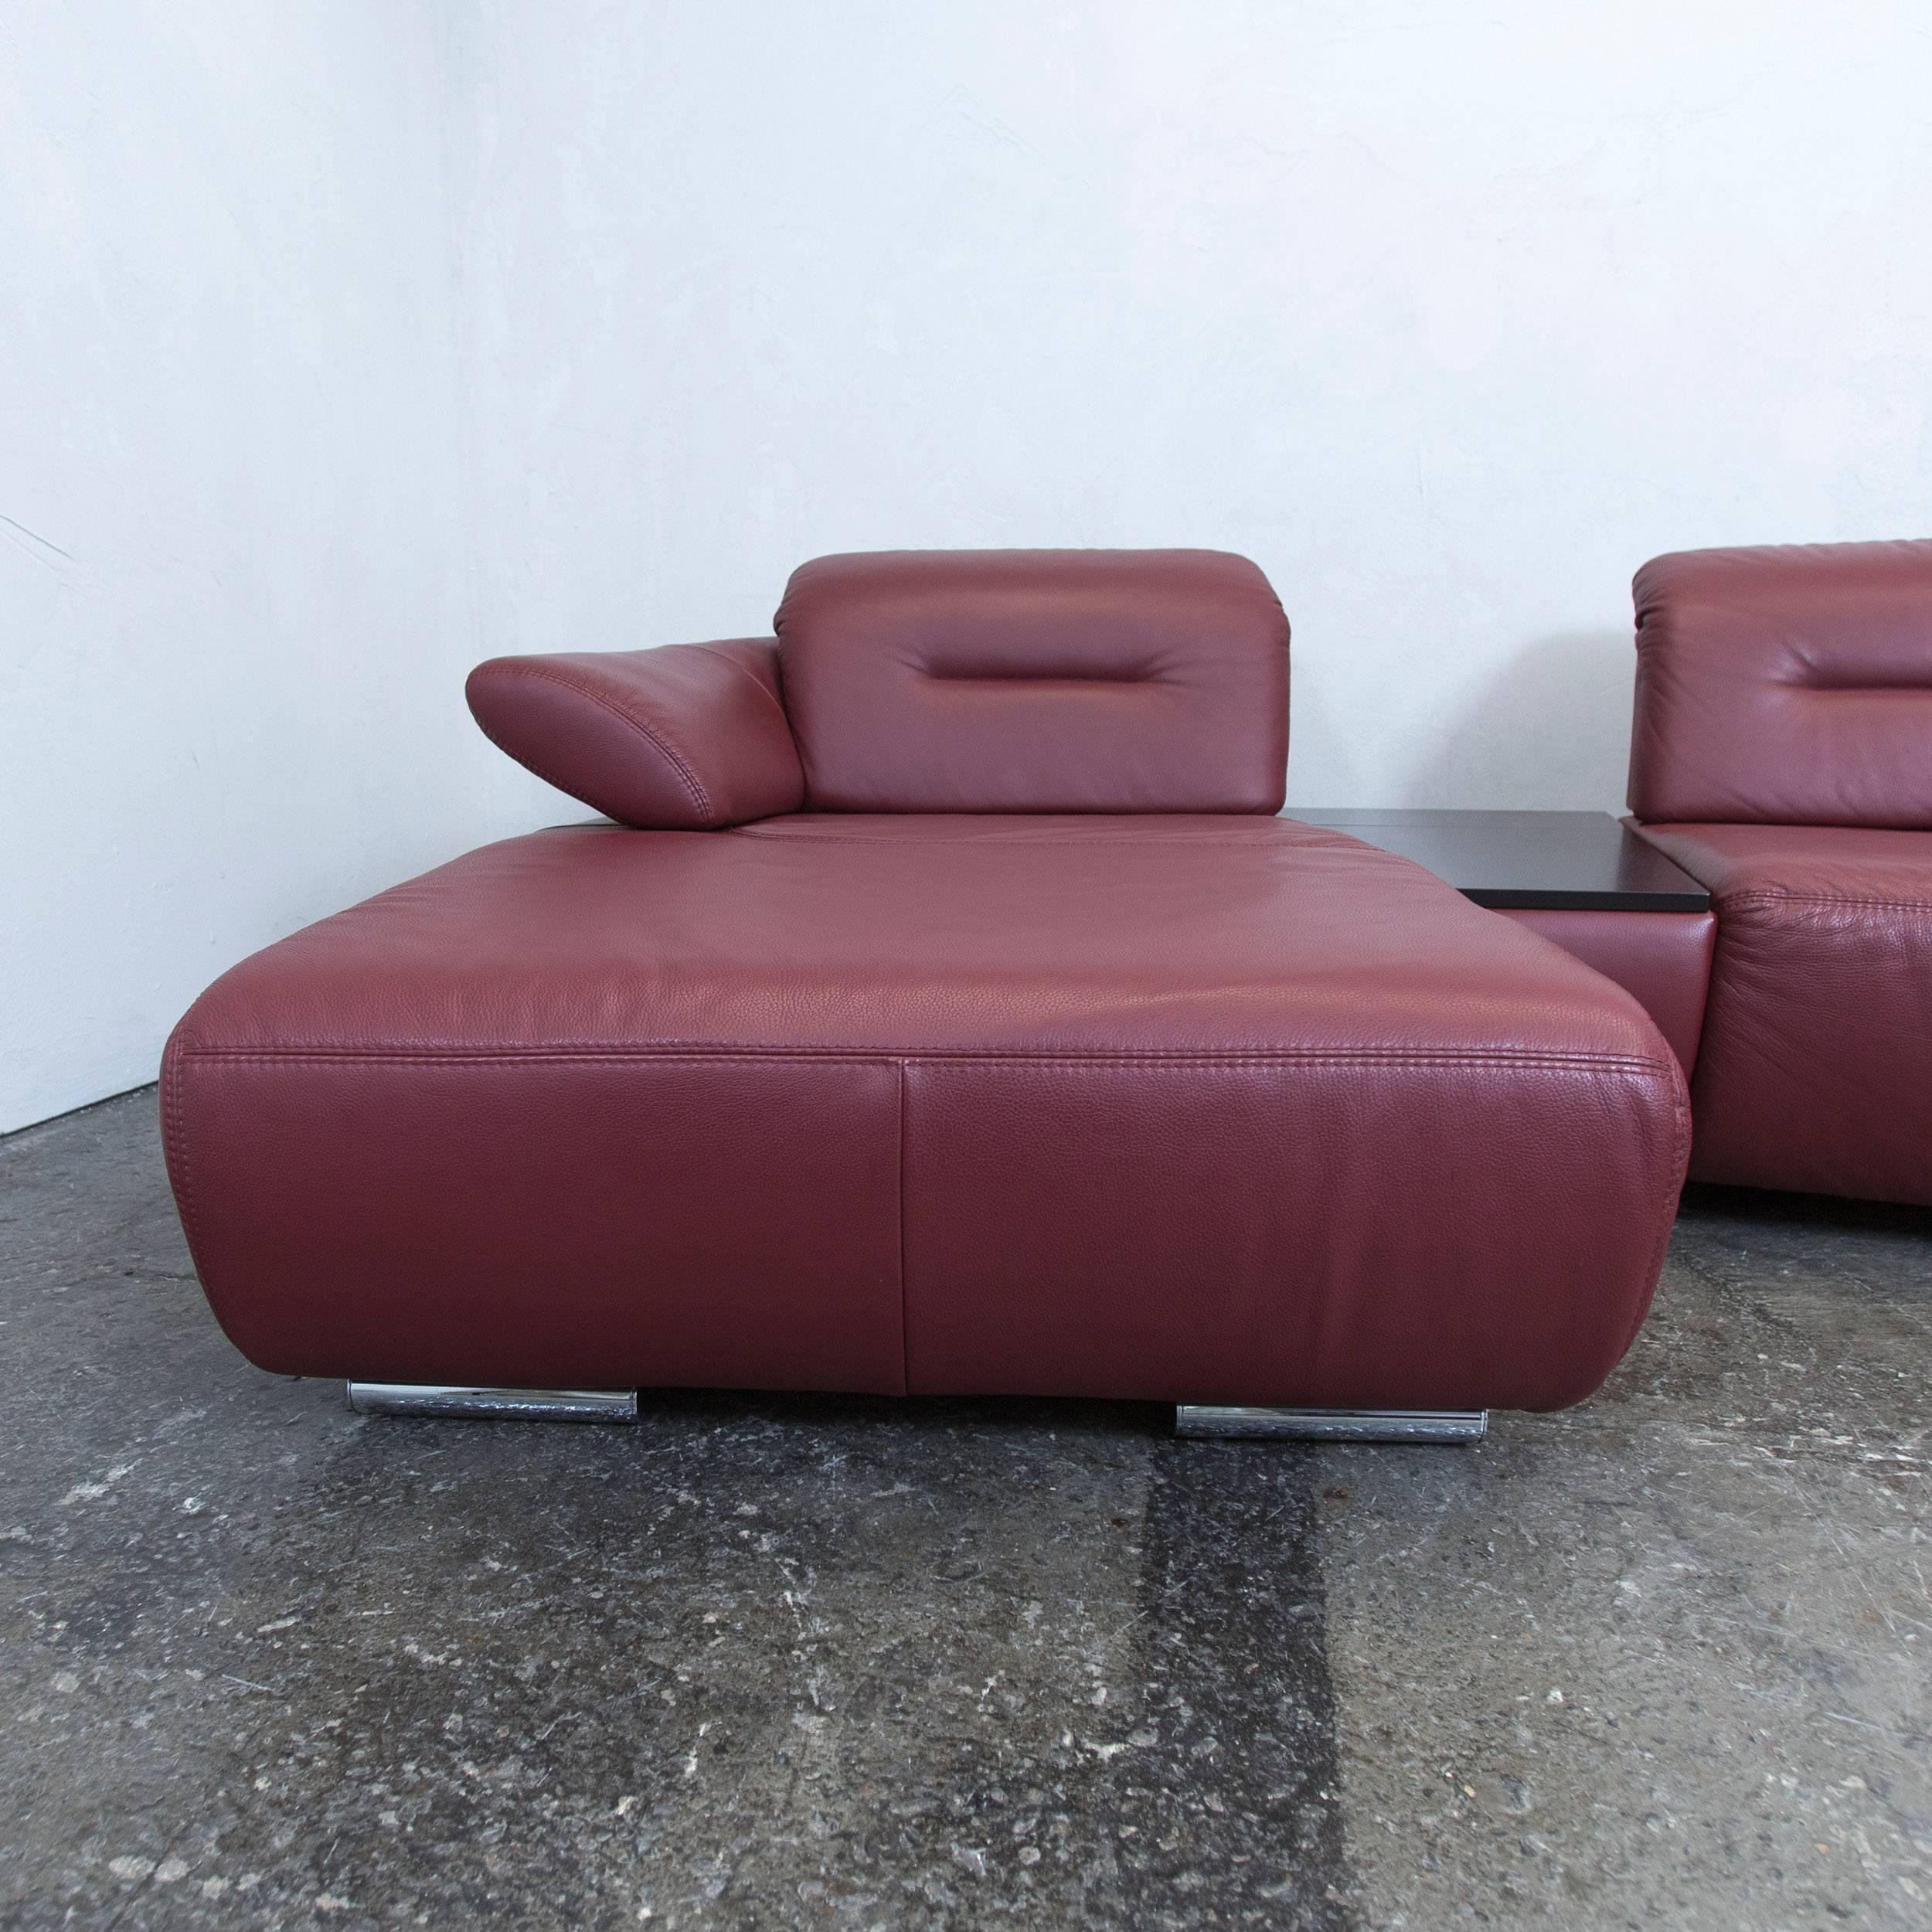 Recamiere modern  Couch Rot. Interesting Vcm Ecksofa Schlafsofa Sofabett Sofa Couch ...